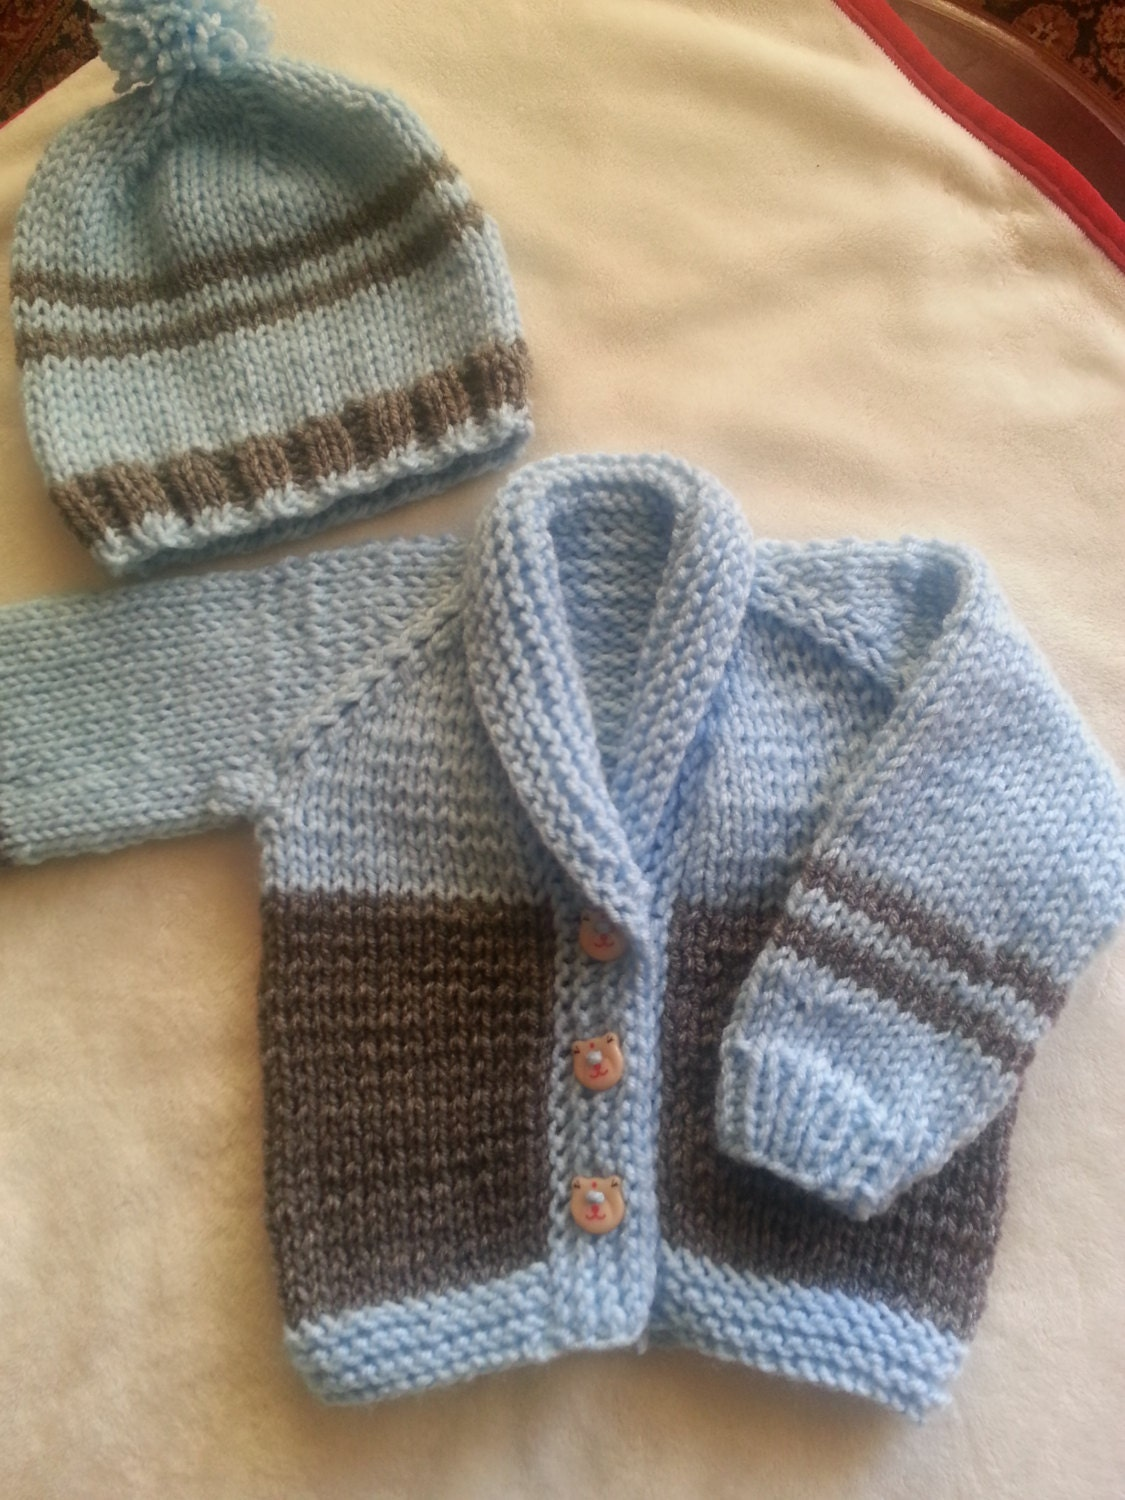 Handmade Knitted Sweater Cardigan Set For Baby Boy By Lunushka